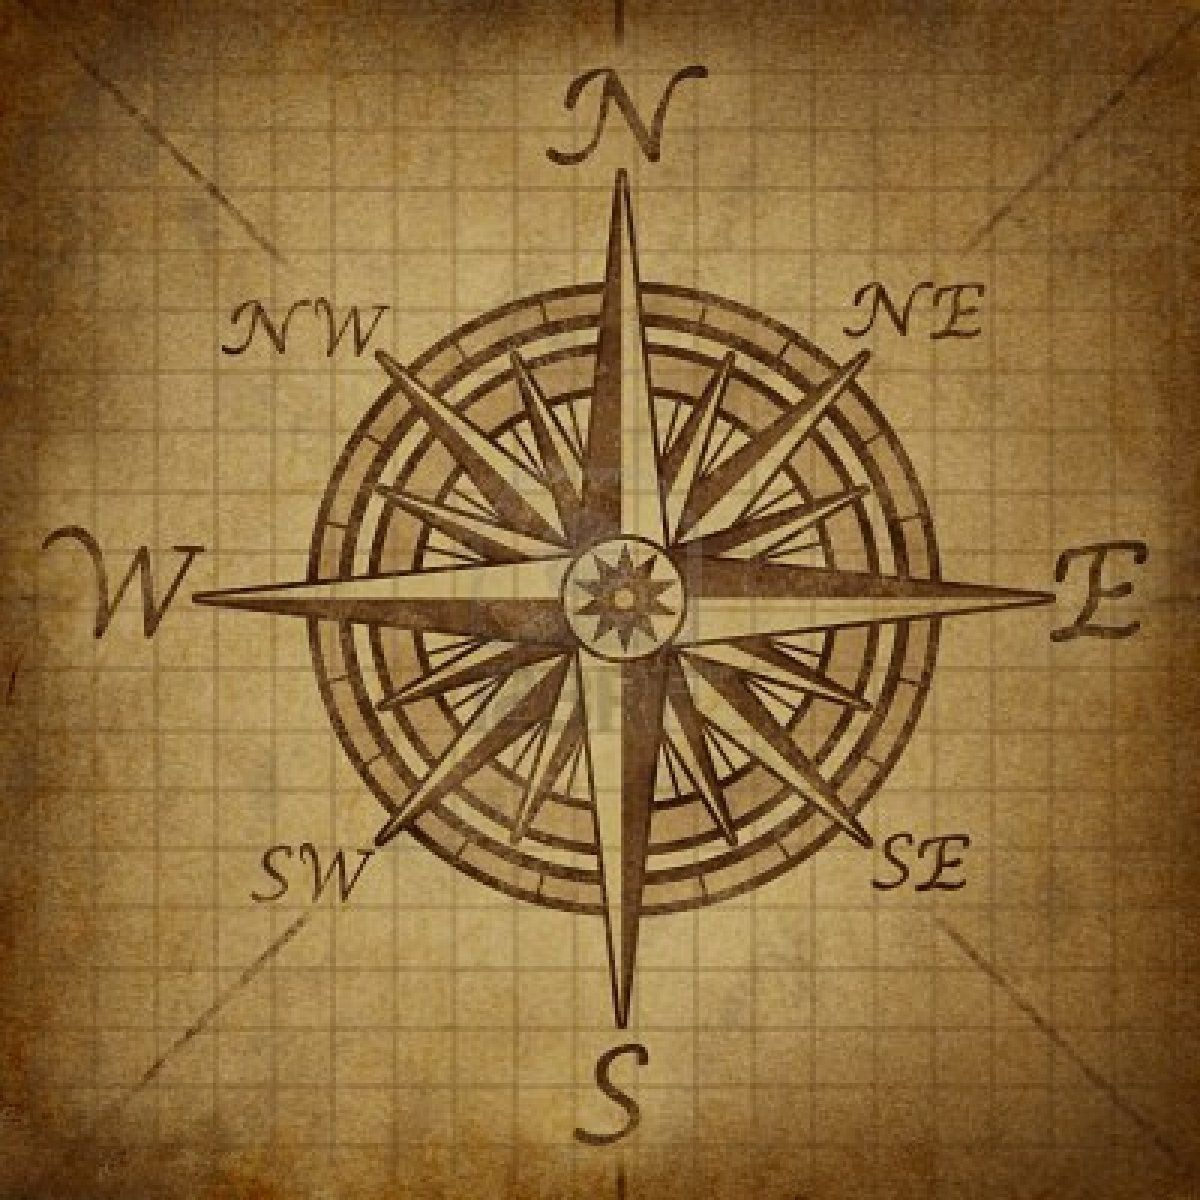 Compass Rose With Old Vintage Grunge Texture Representing